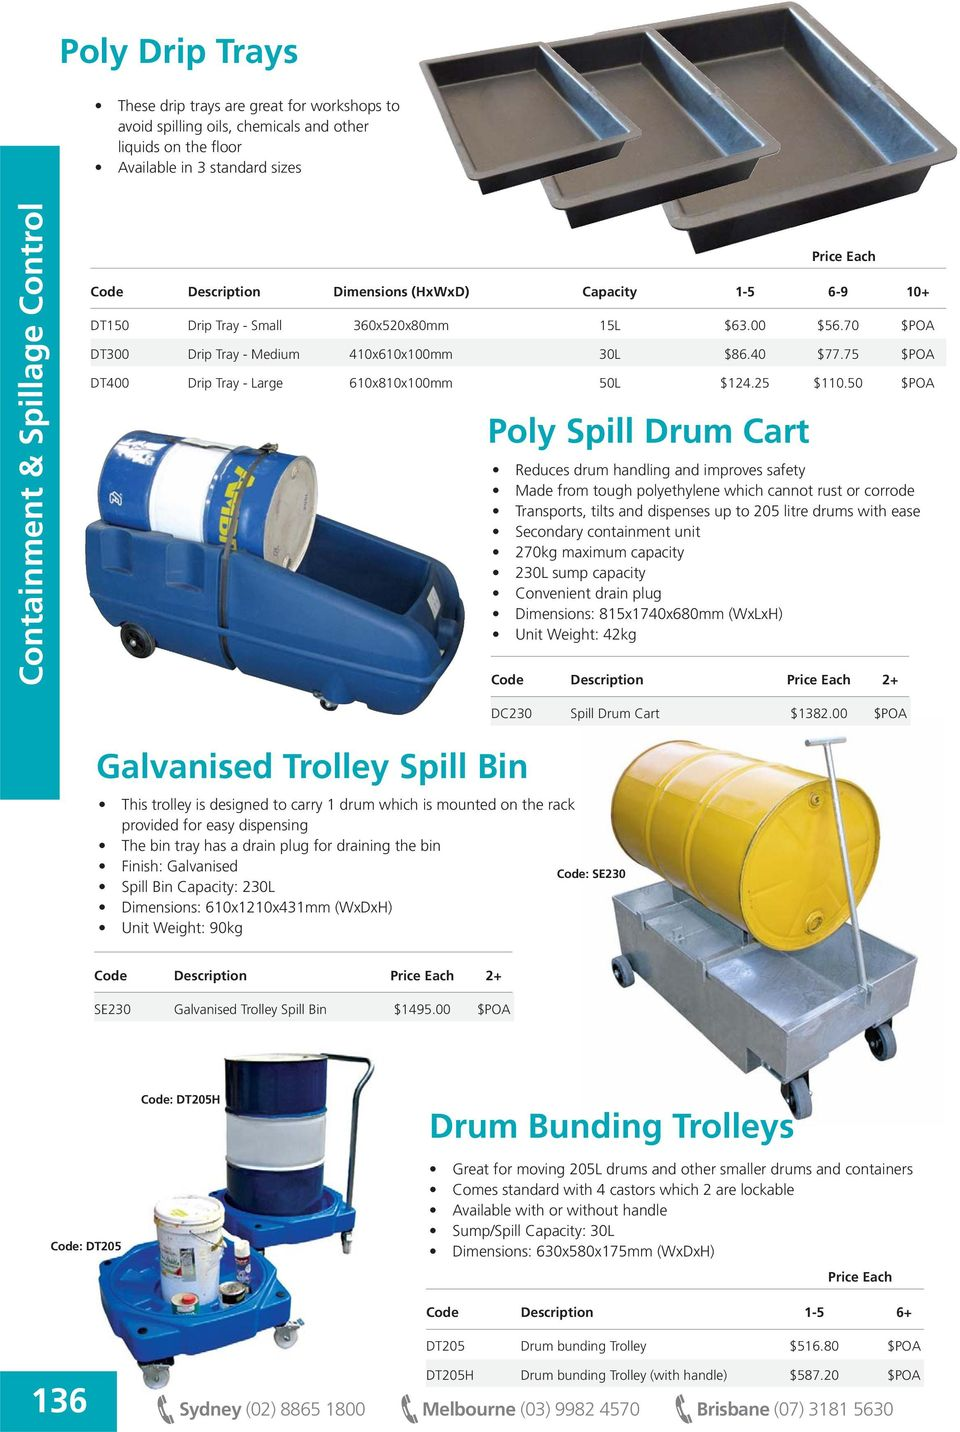 50 $POA Poly Spill Drum Cart Reduces drum handling and improves safety Made from tough polyethylene which cannot rust or corrode Transports, tilts and dispenses up to 205 litre drums with ease